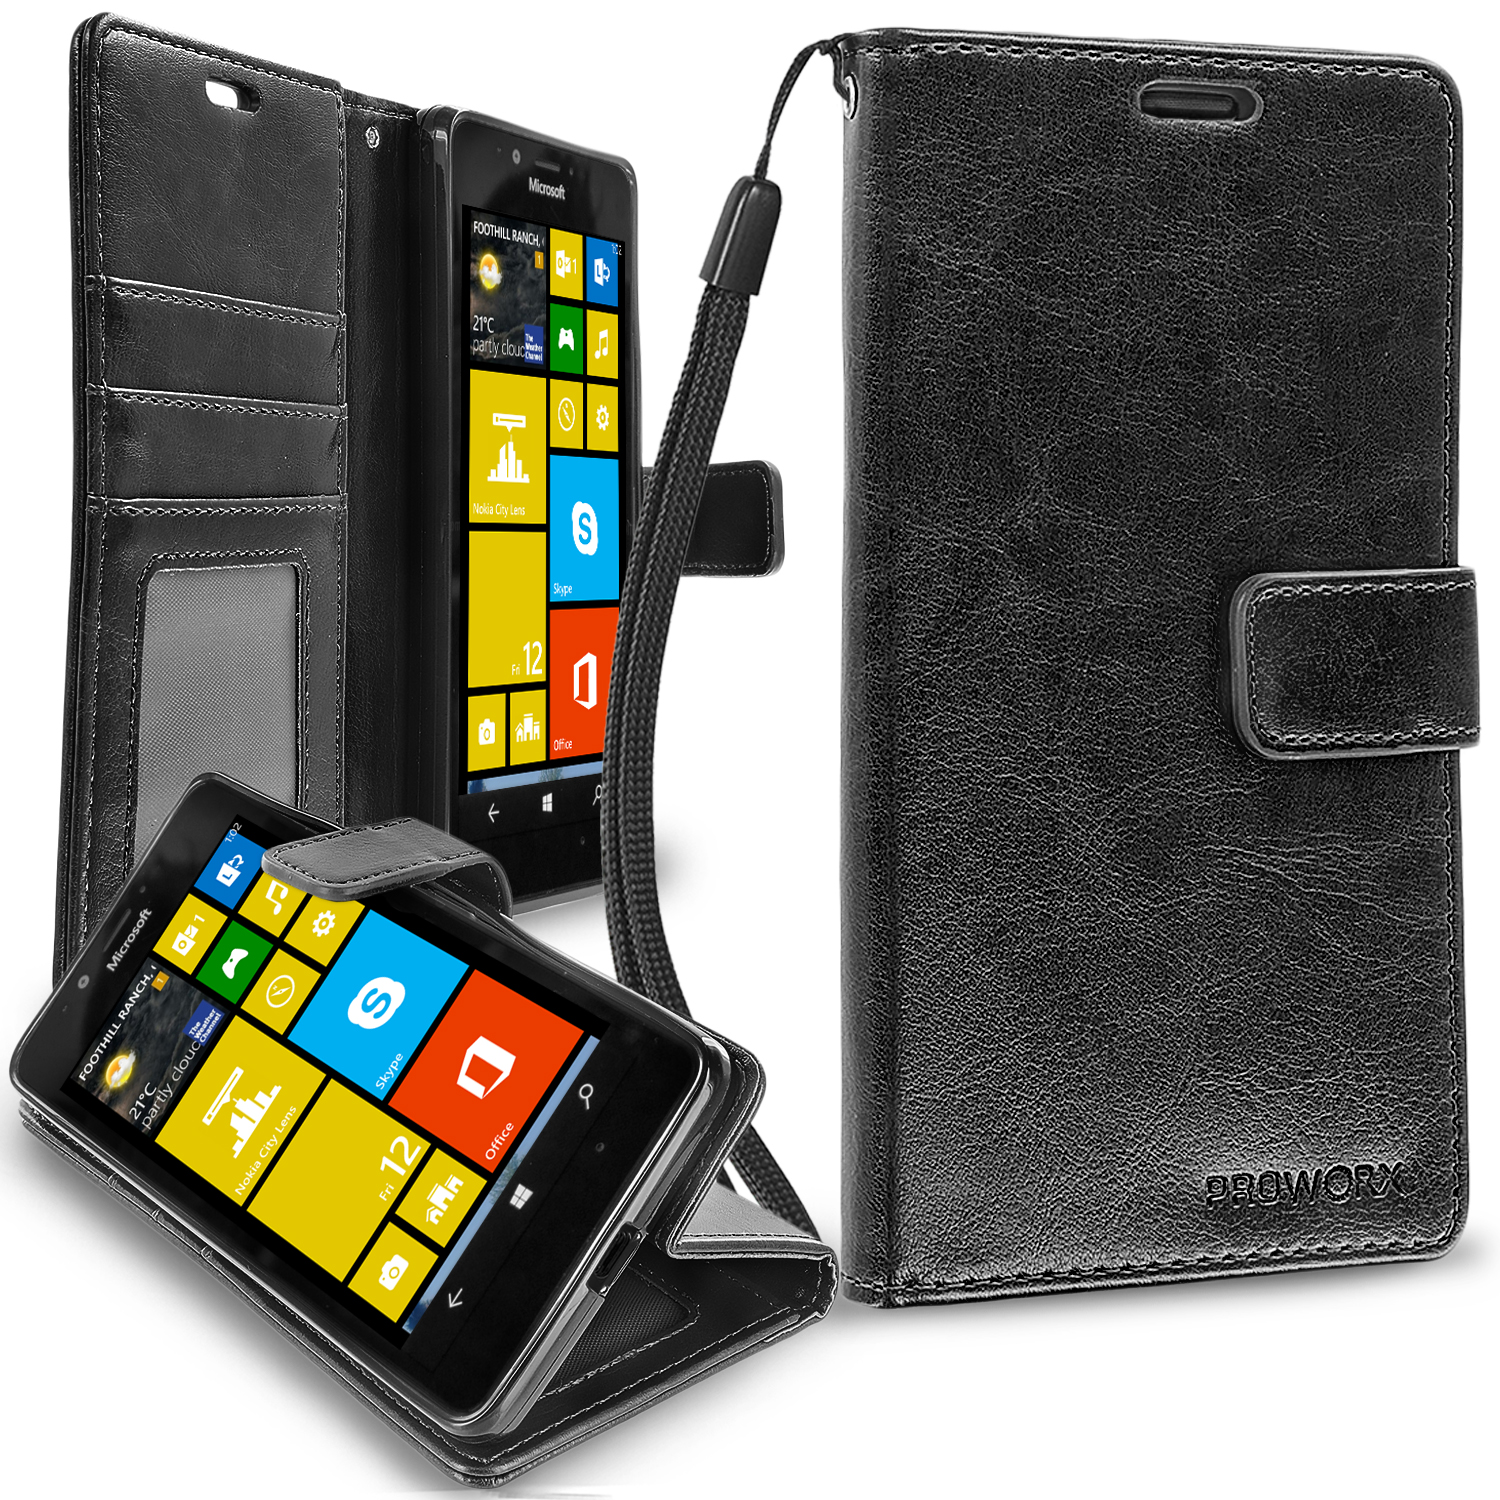 Microsoft Lumia 950 Black ProWorx Wallet Case Luxury PU Leather Case Cover With Card Slots & Stand